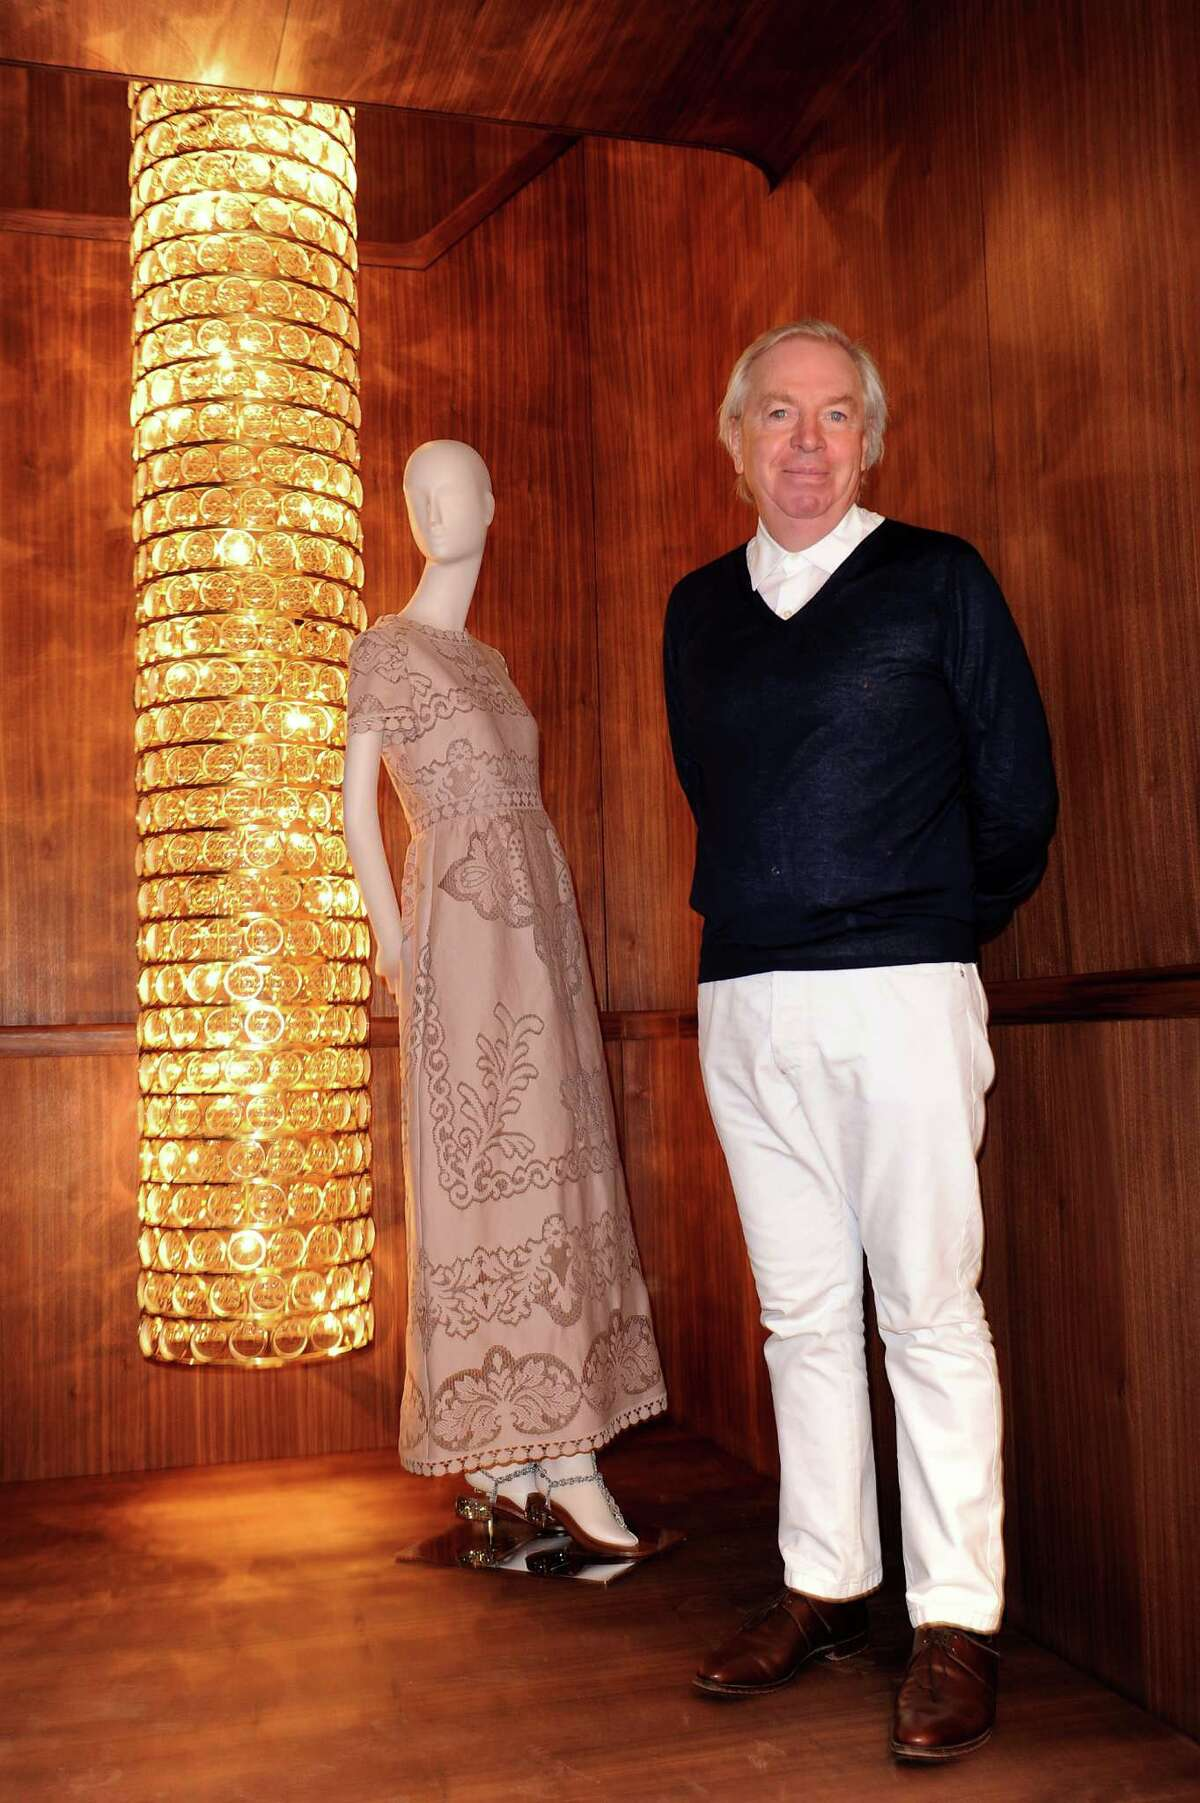 Architect David Chipperfield is at a very different place in his career: At the peak of his profession, recognized as the designer of some of the world's most praised cultural institutions (including the master plan for the Menil Collection's campus). Here he's shown at the Valentino flagship store opening on February 22, 2012 in Milan, Italy.